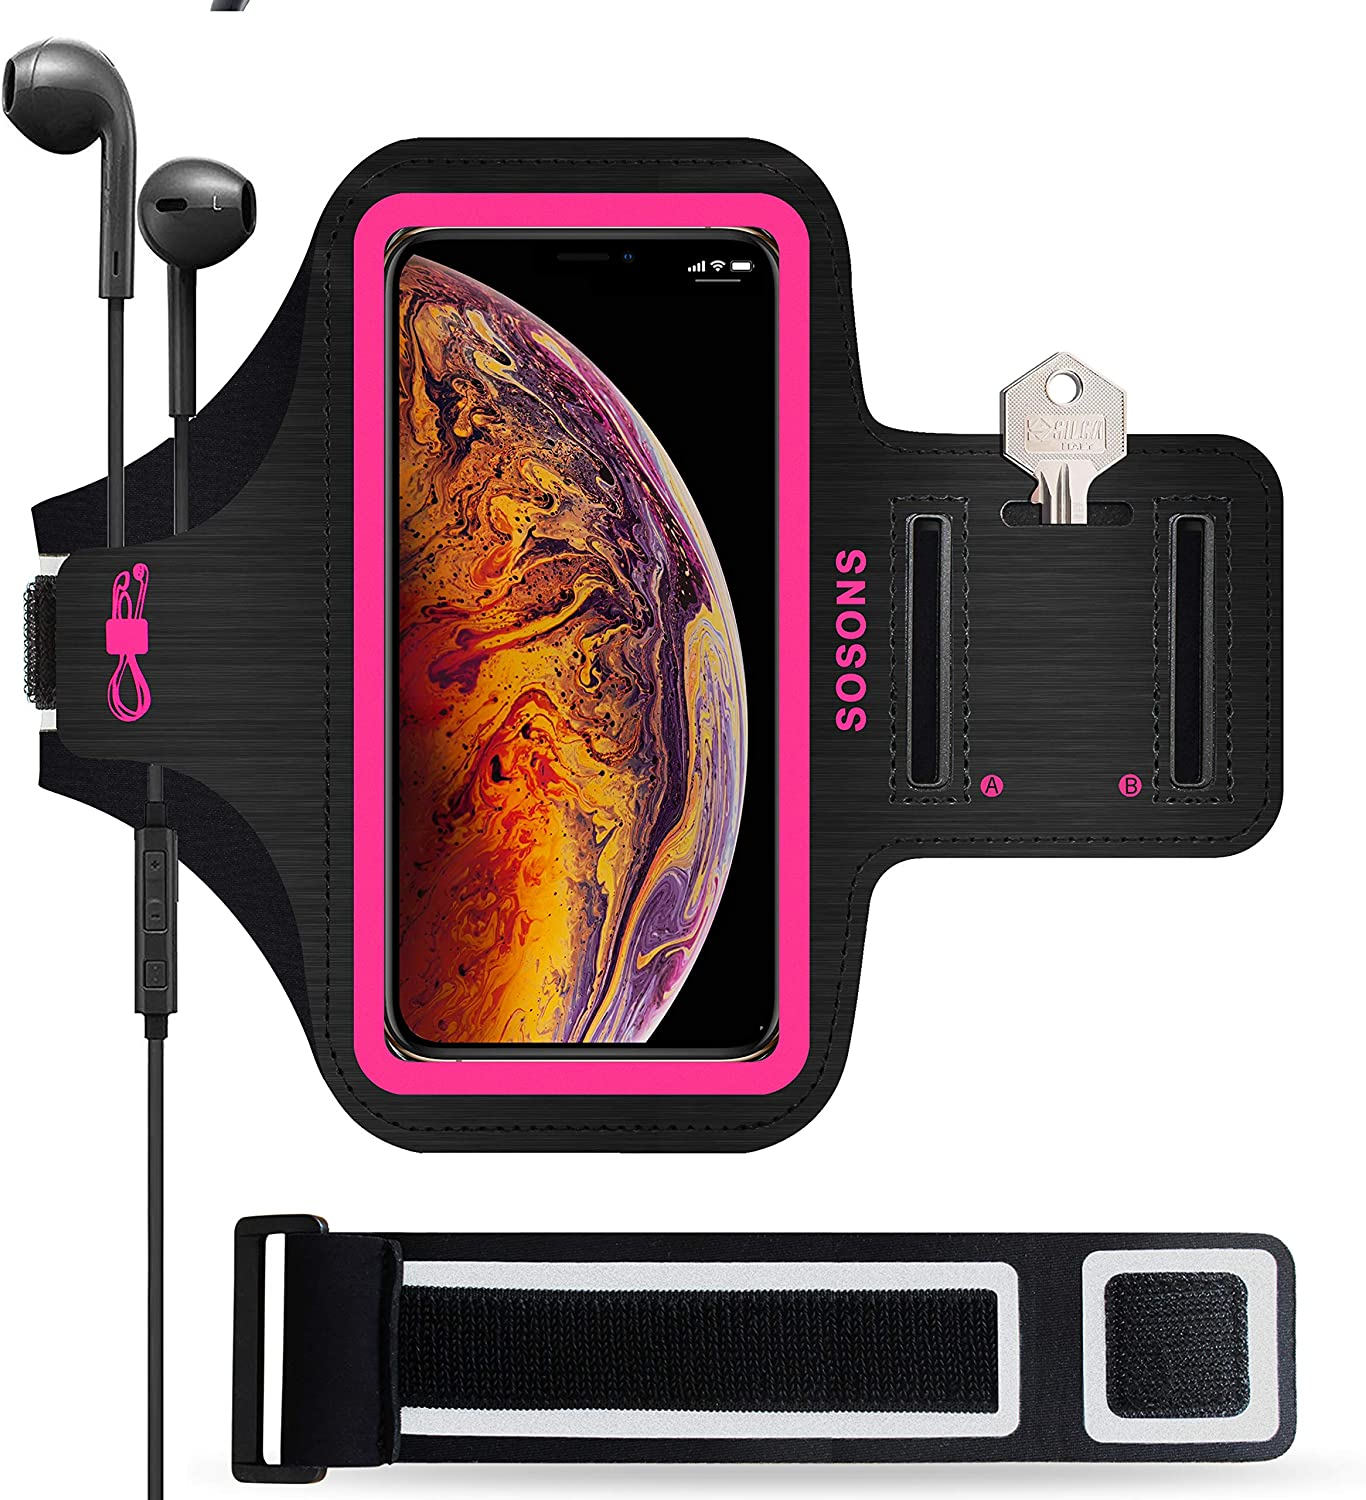 iPhone Xs Max Armband,SOSONS 6.5 Inch Water Resistant Sports Gym Armband for iPhone Xs Max.Fingerprint Touch Supported and Fits Smartphones with Slim Case,with Card Pockets + Extension Strap(Pink)